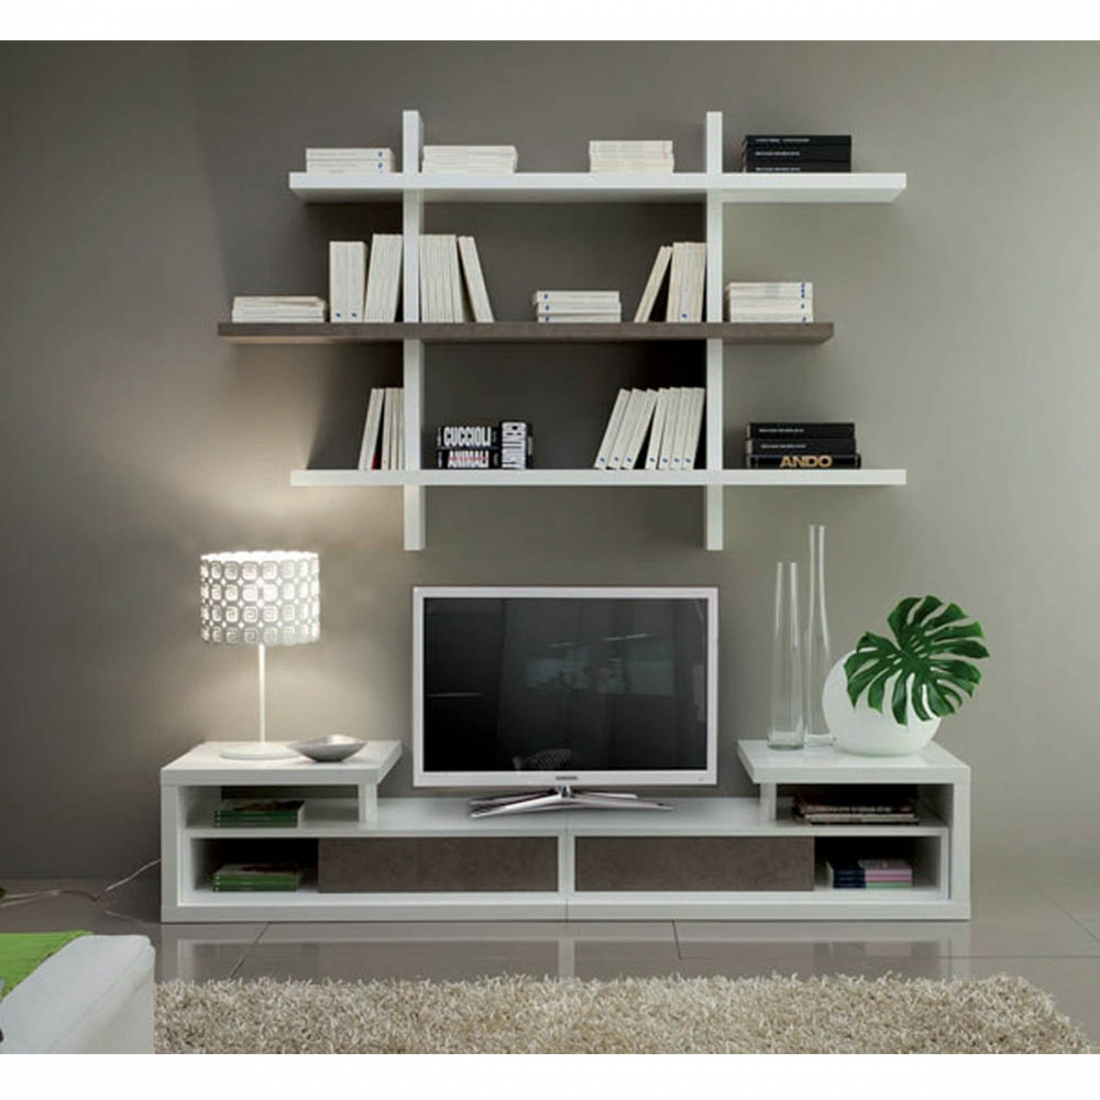 etagere murale design blanche vittoria zendart design. Black Bedroom Furniture Sets. Home Design Ideas